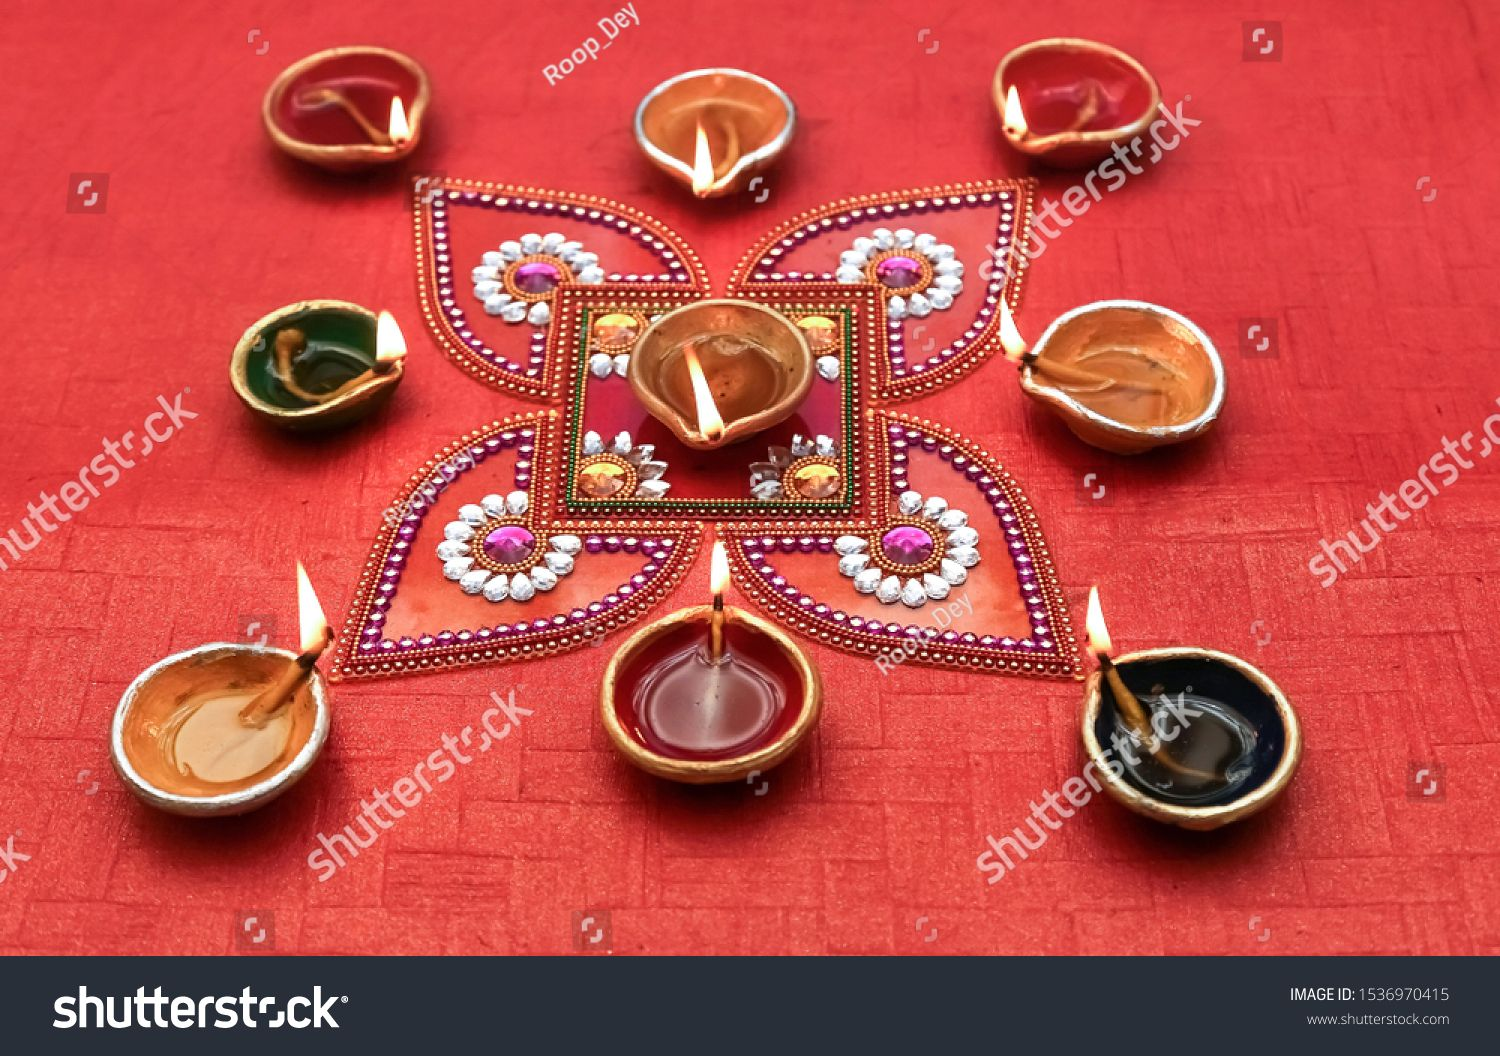 Diwali clay lamps with traditional rangoli design on red